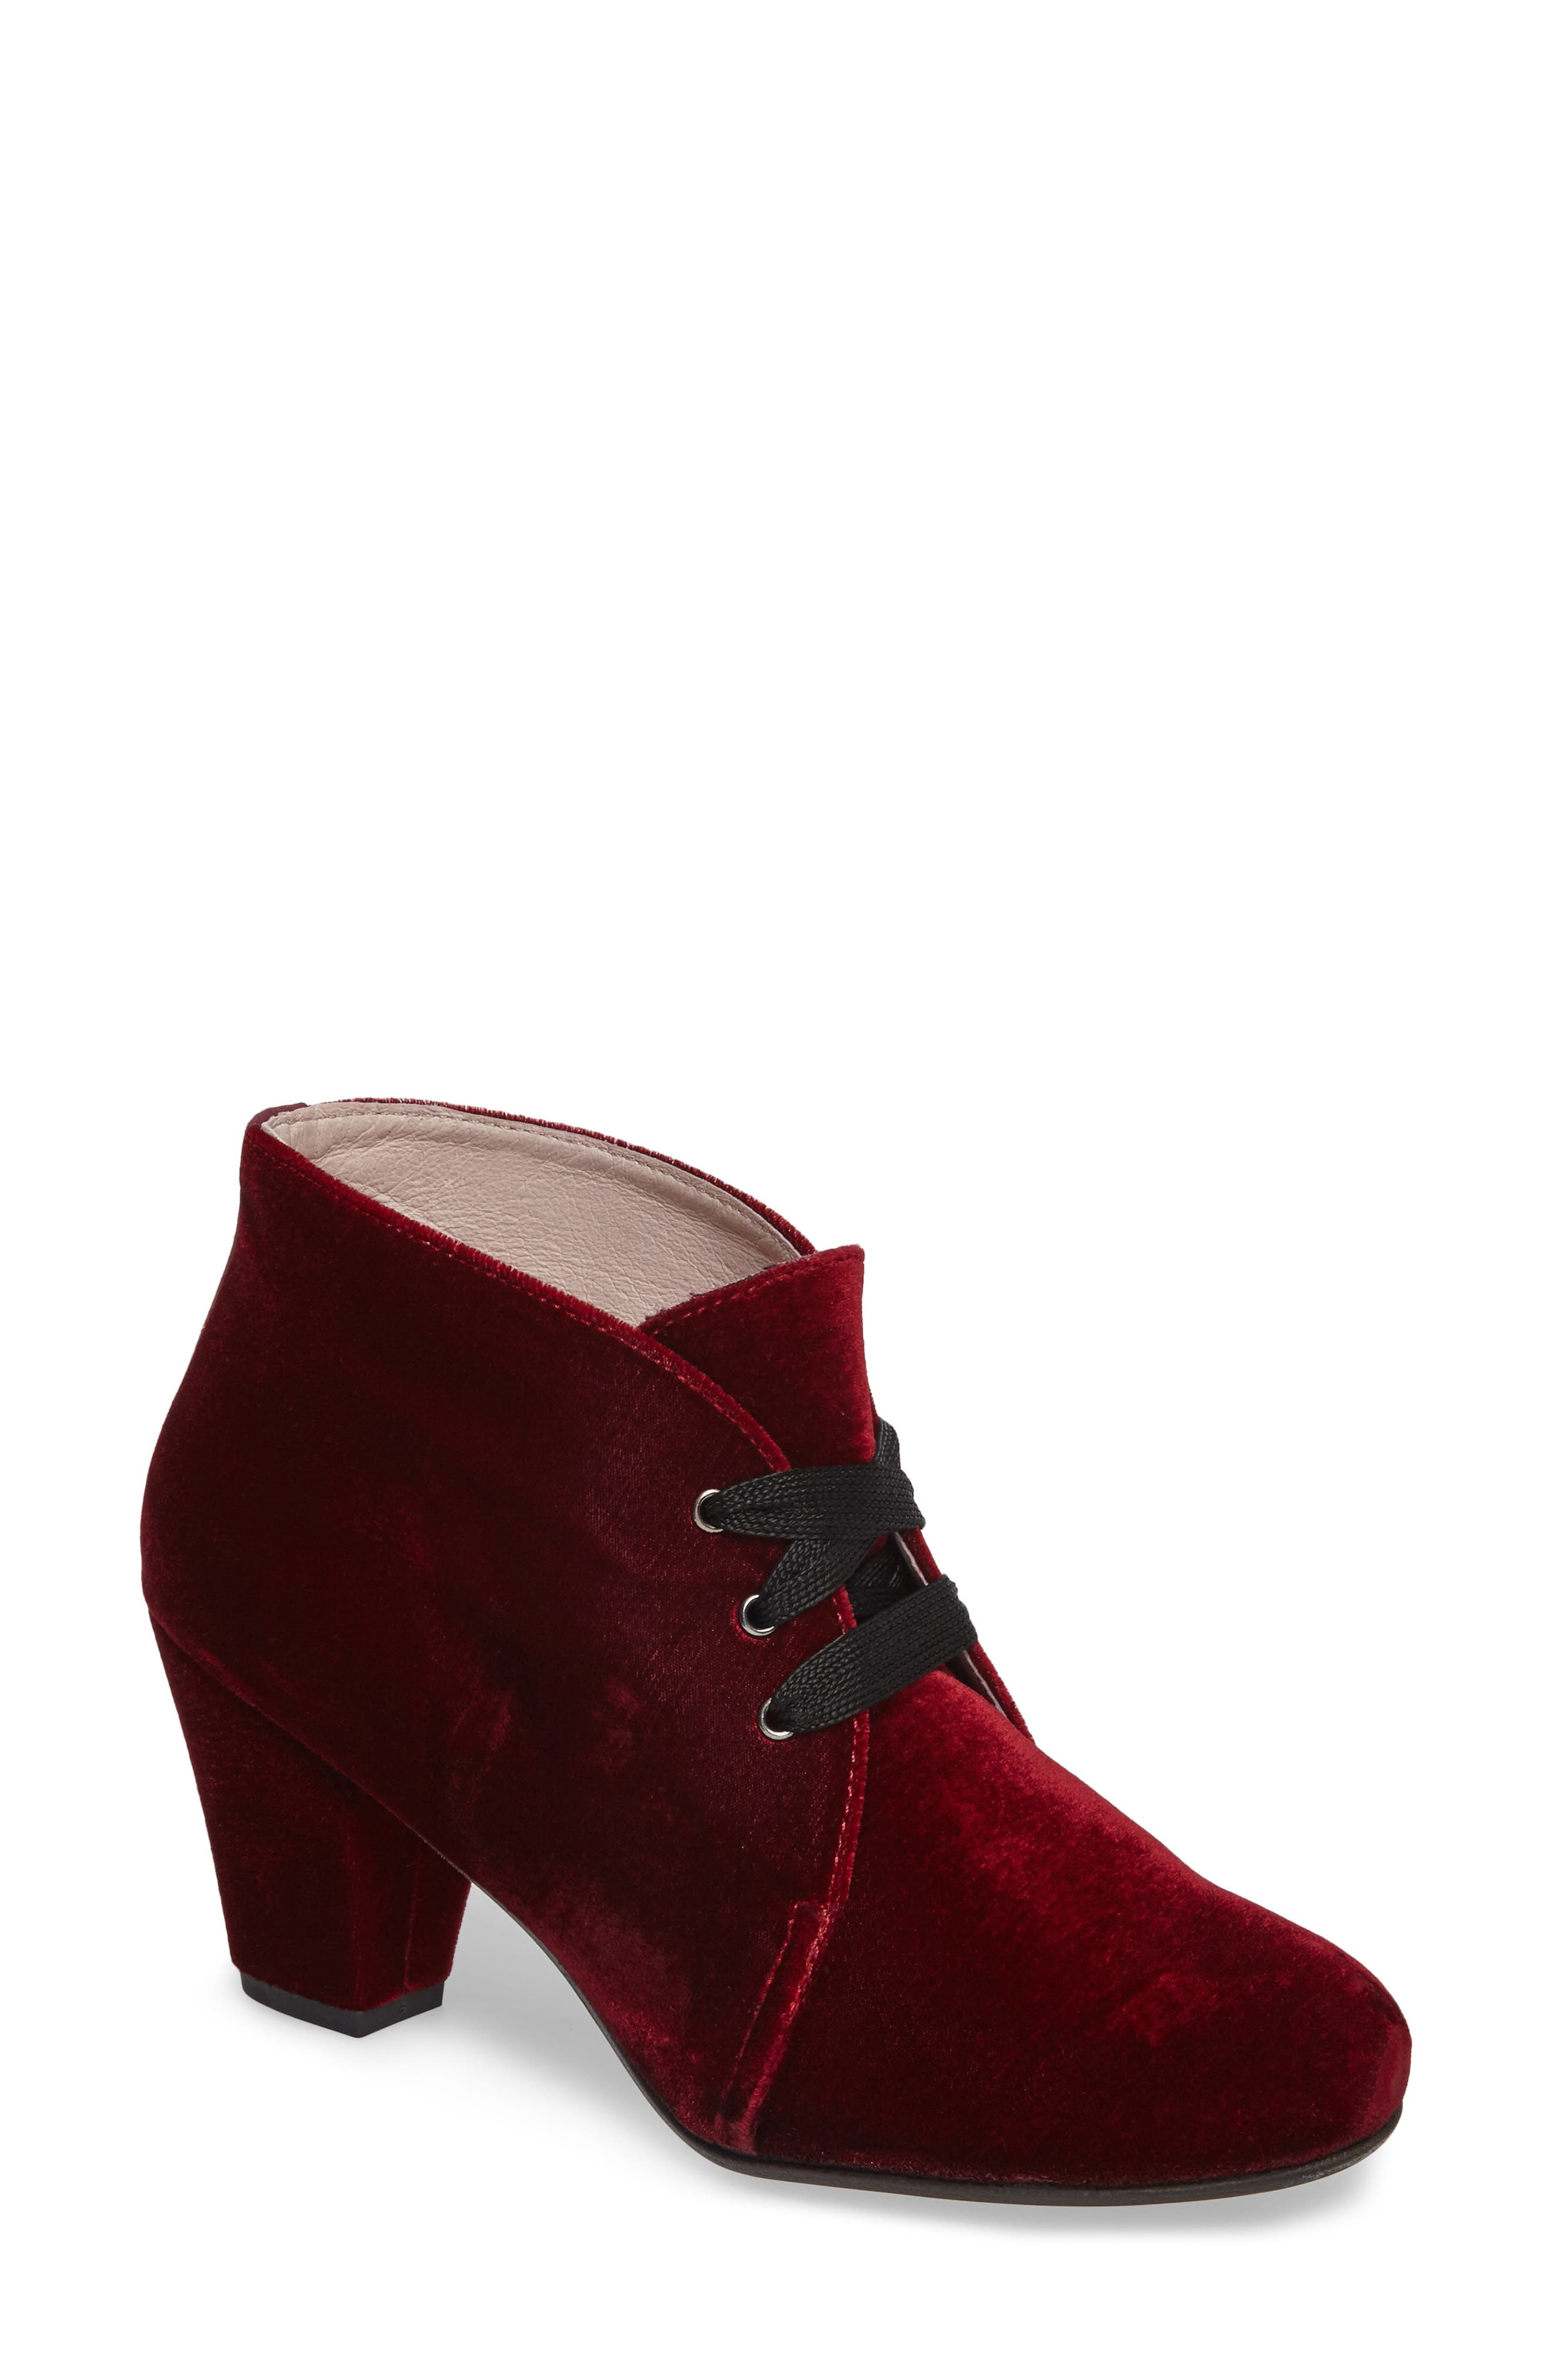 Alternate Image 1 Selected - patricia green Clair Lace-Up Bootie (Women)